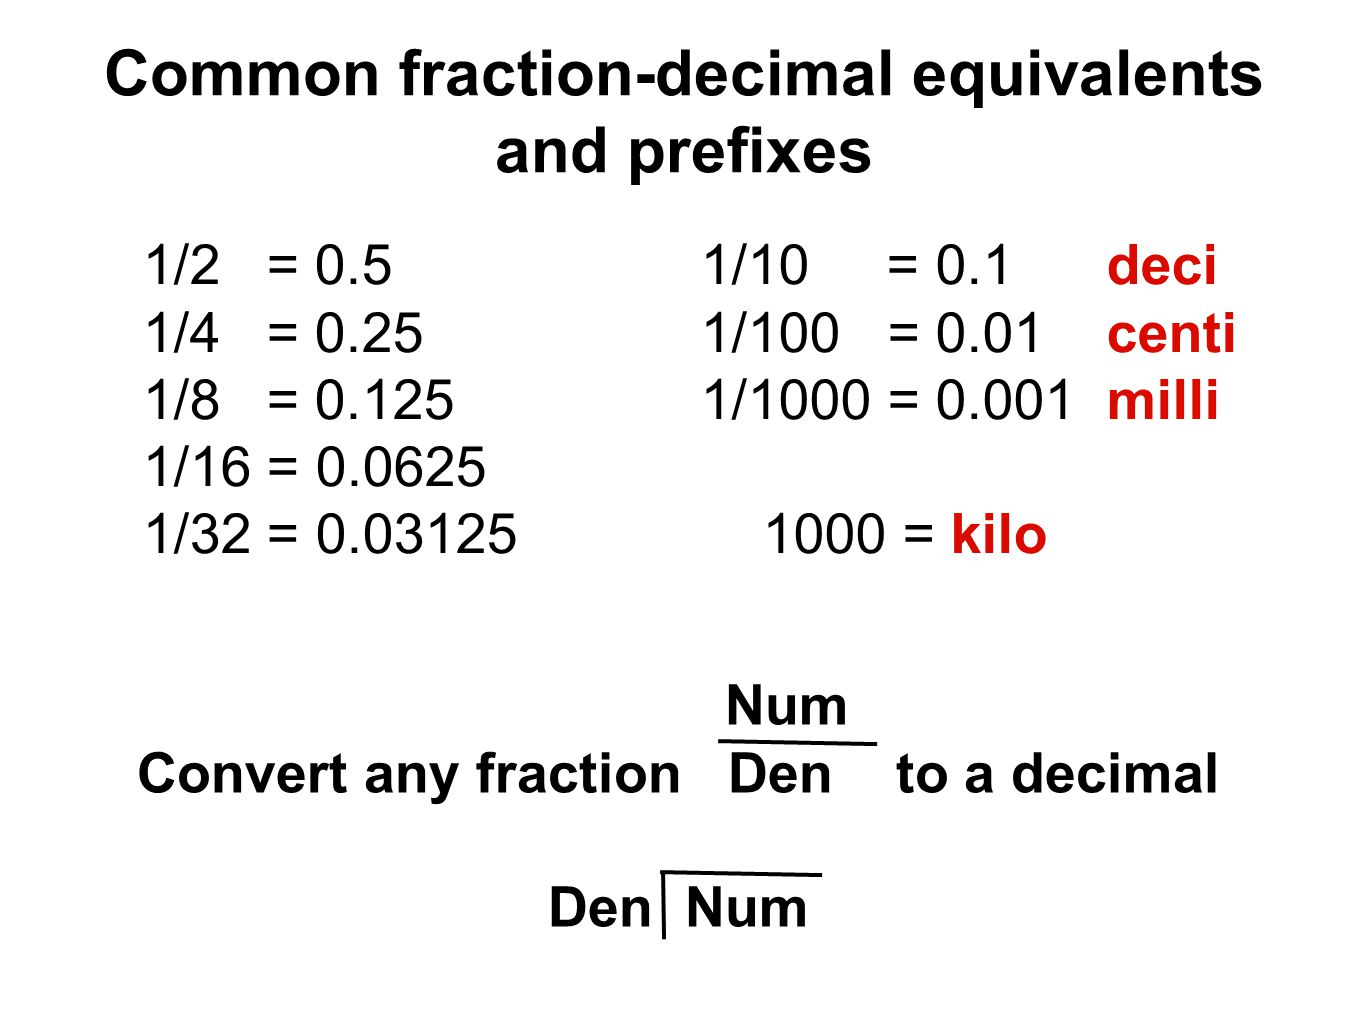 Common fraction-decimal equivalents and prefixes